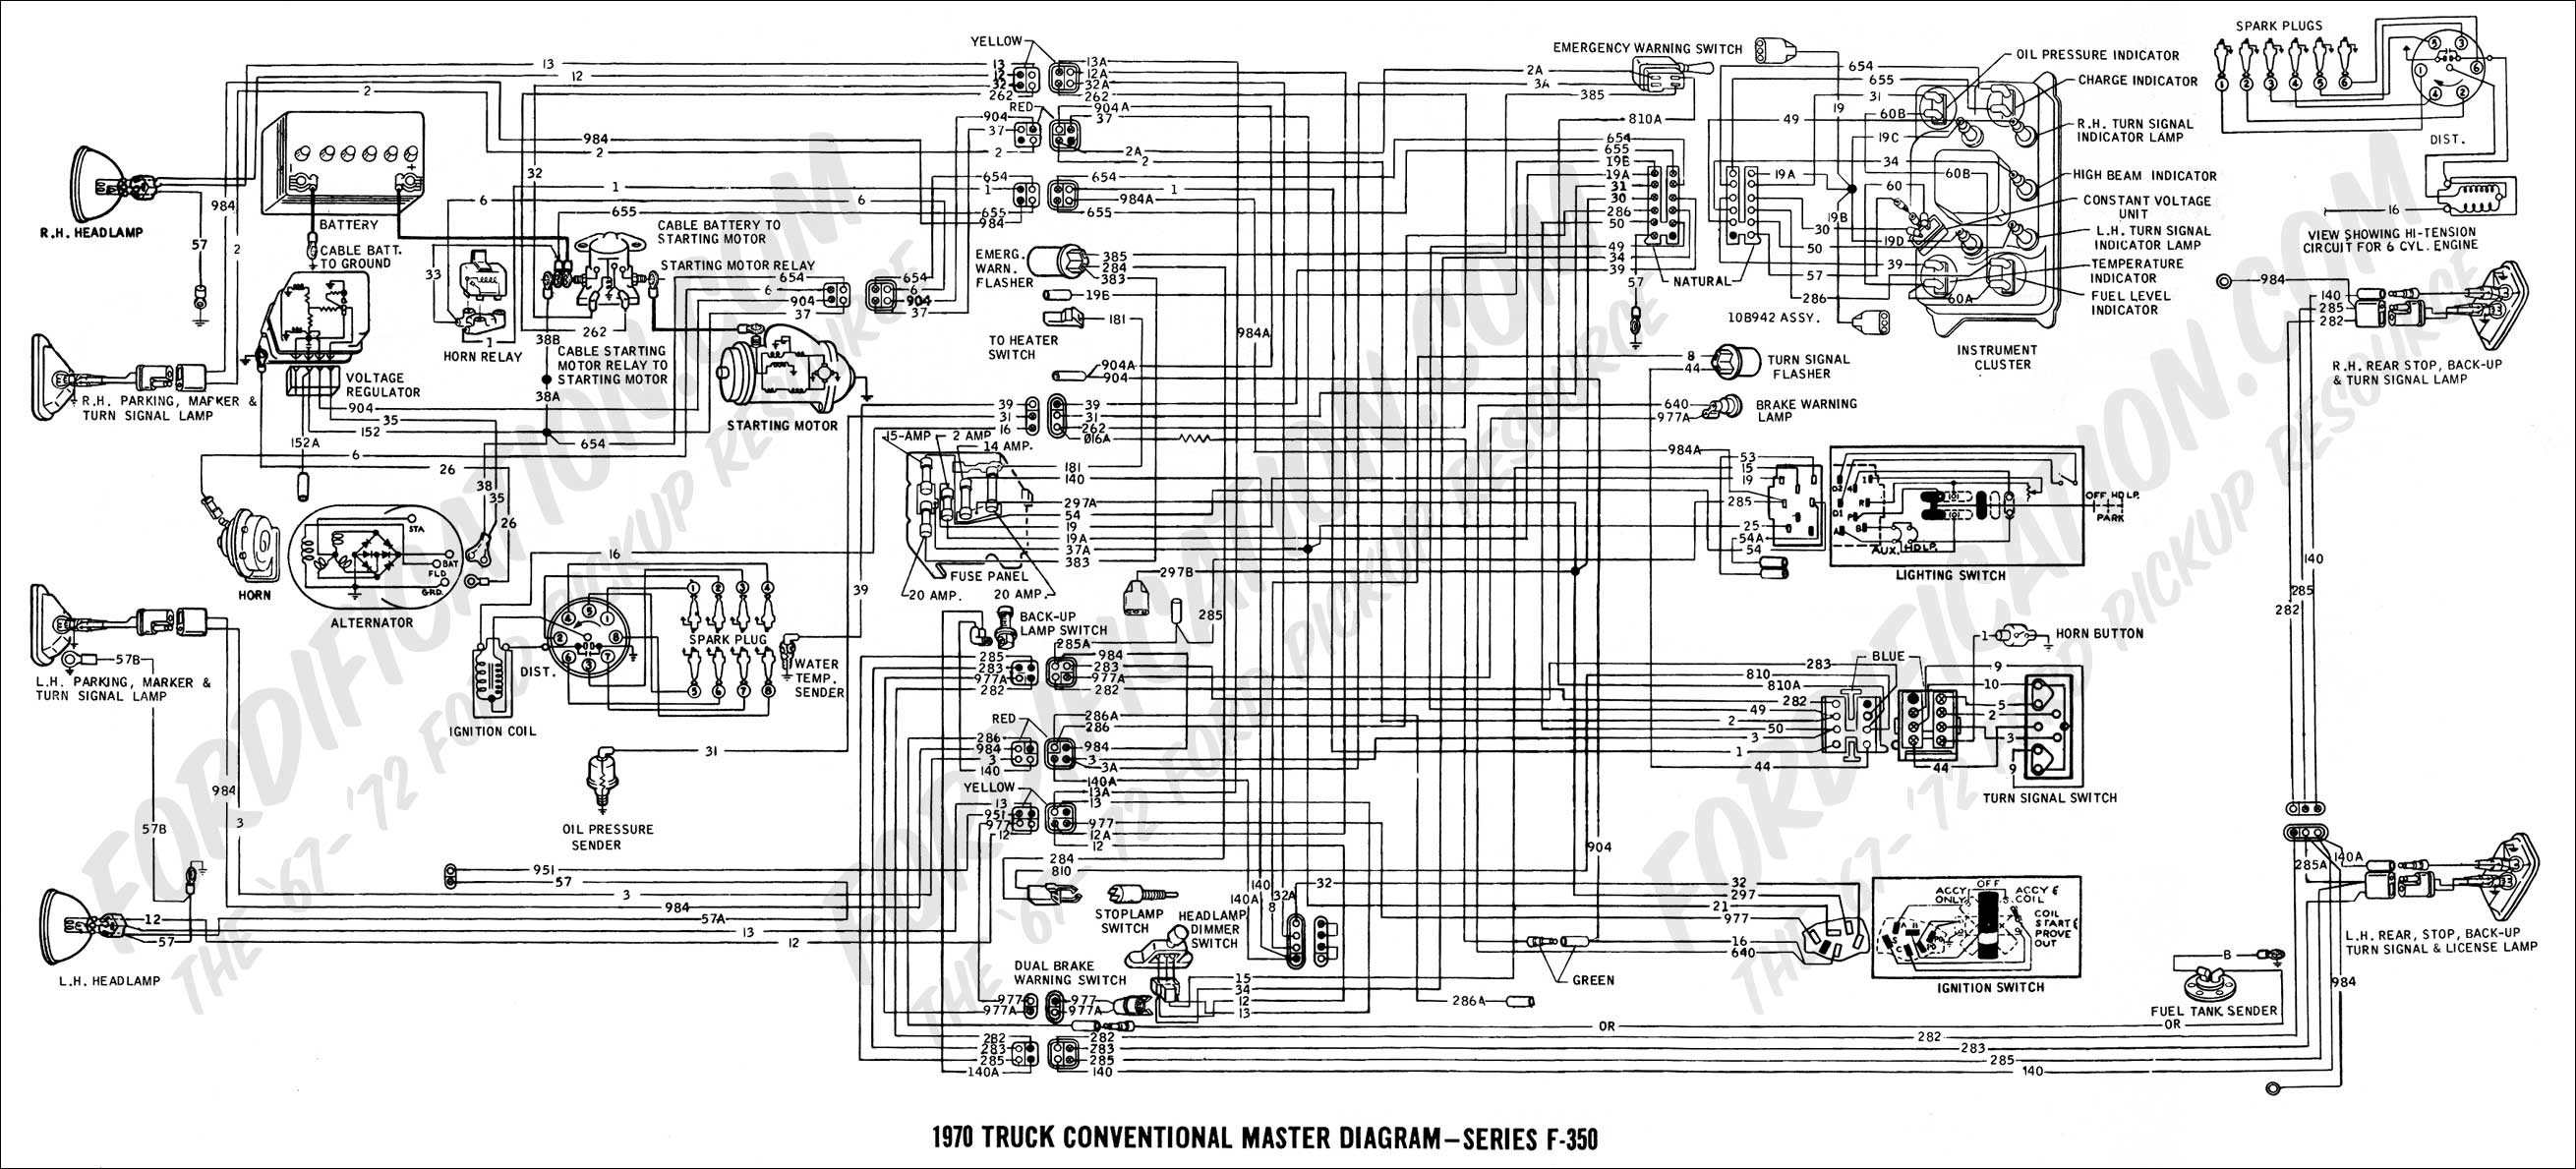 Ford Truck Technical Drawings And Schematics Section H Wiring 2004 F350 Headlight Wiring Diagram F350 Wiring Schematics